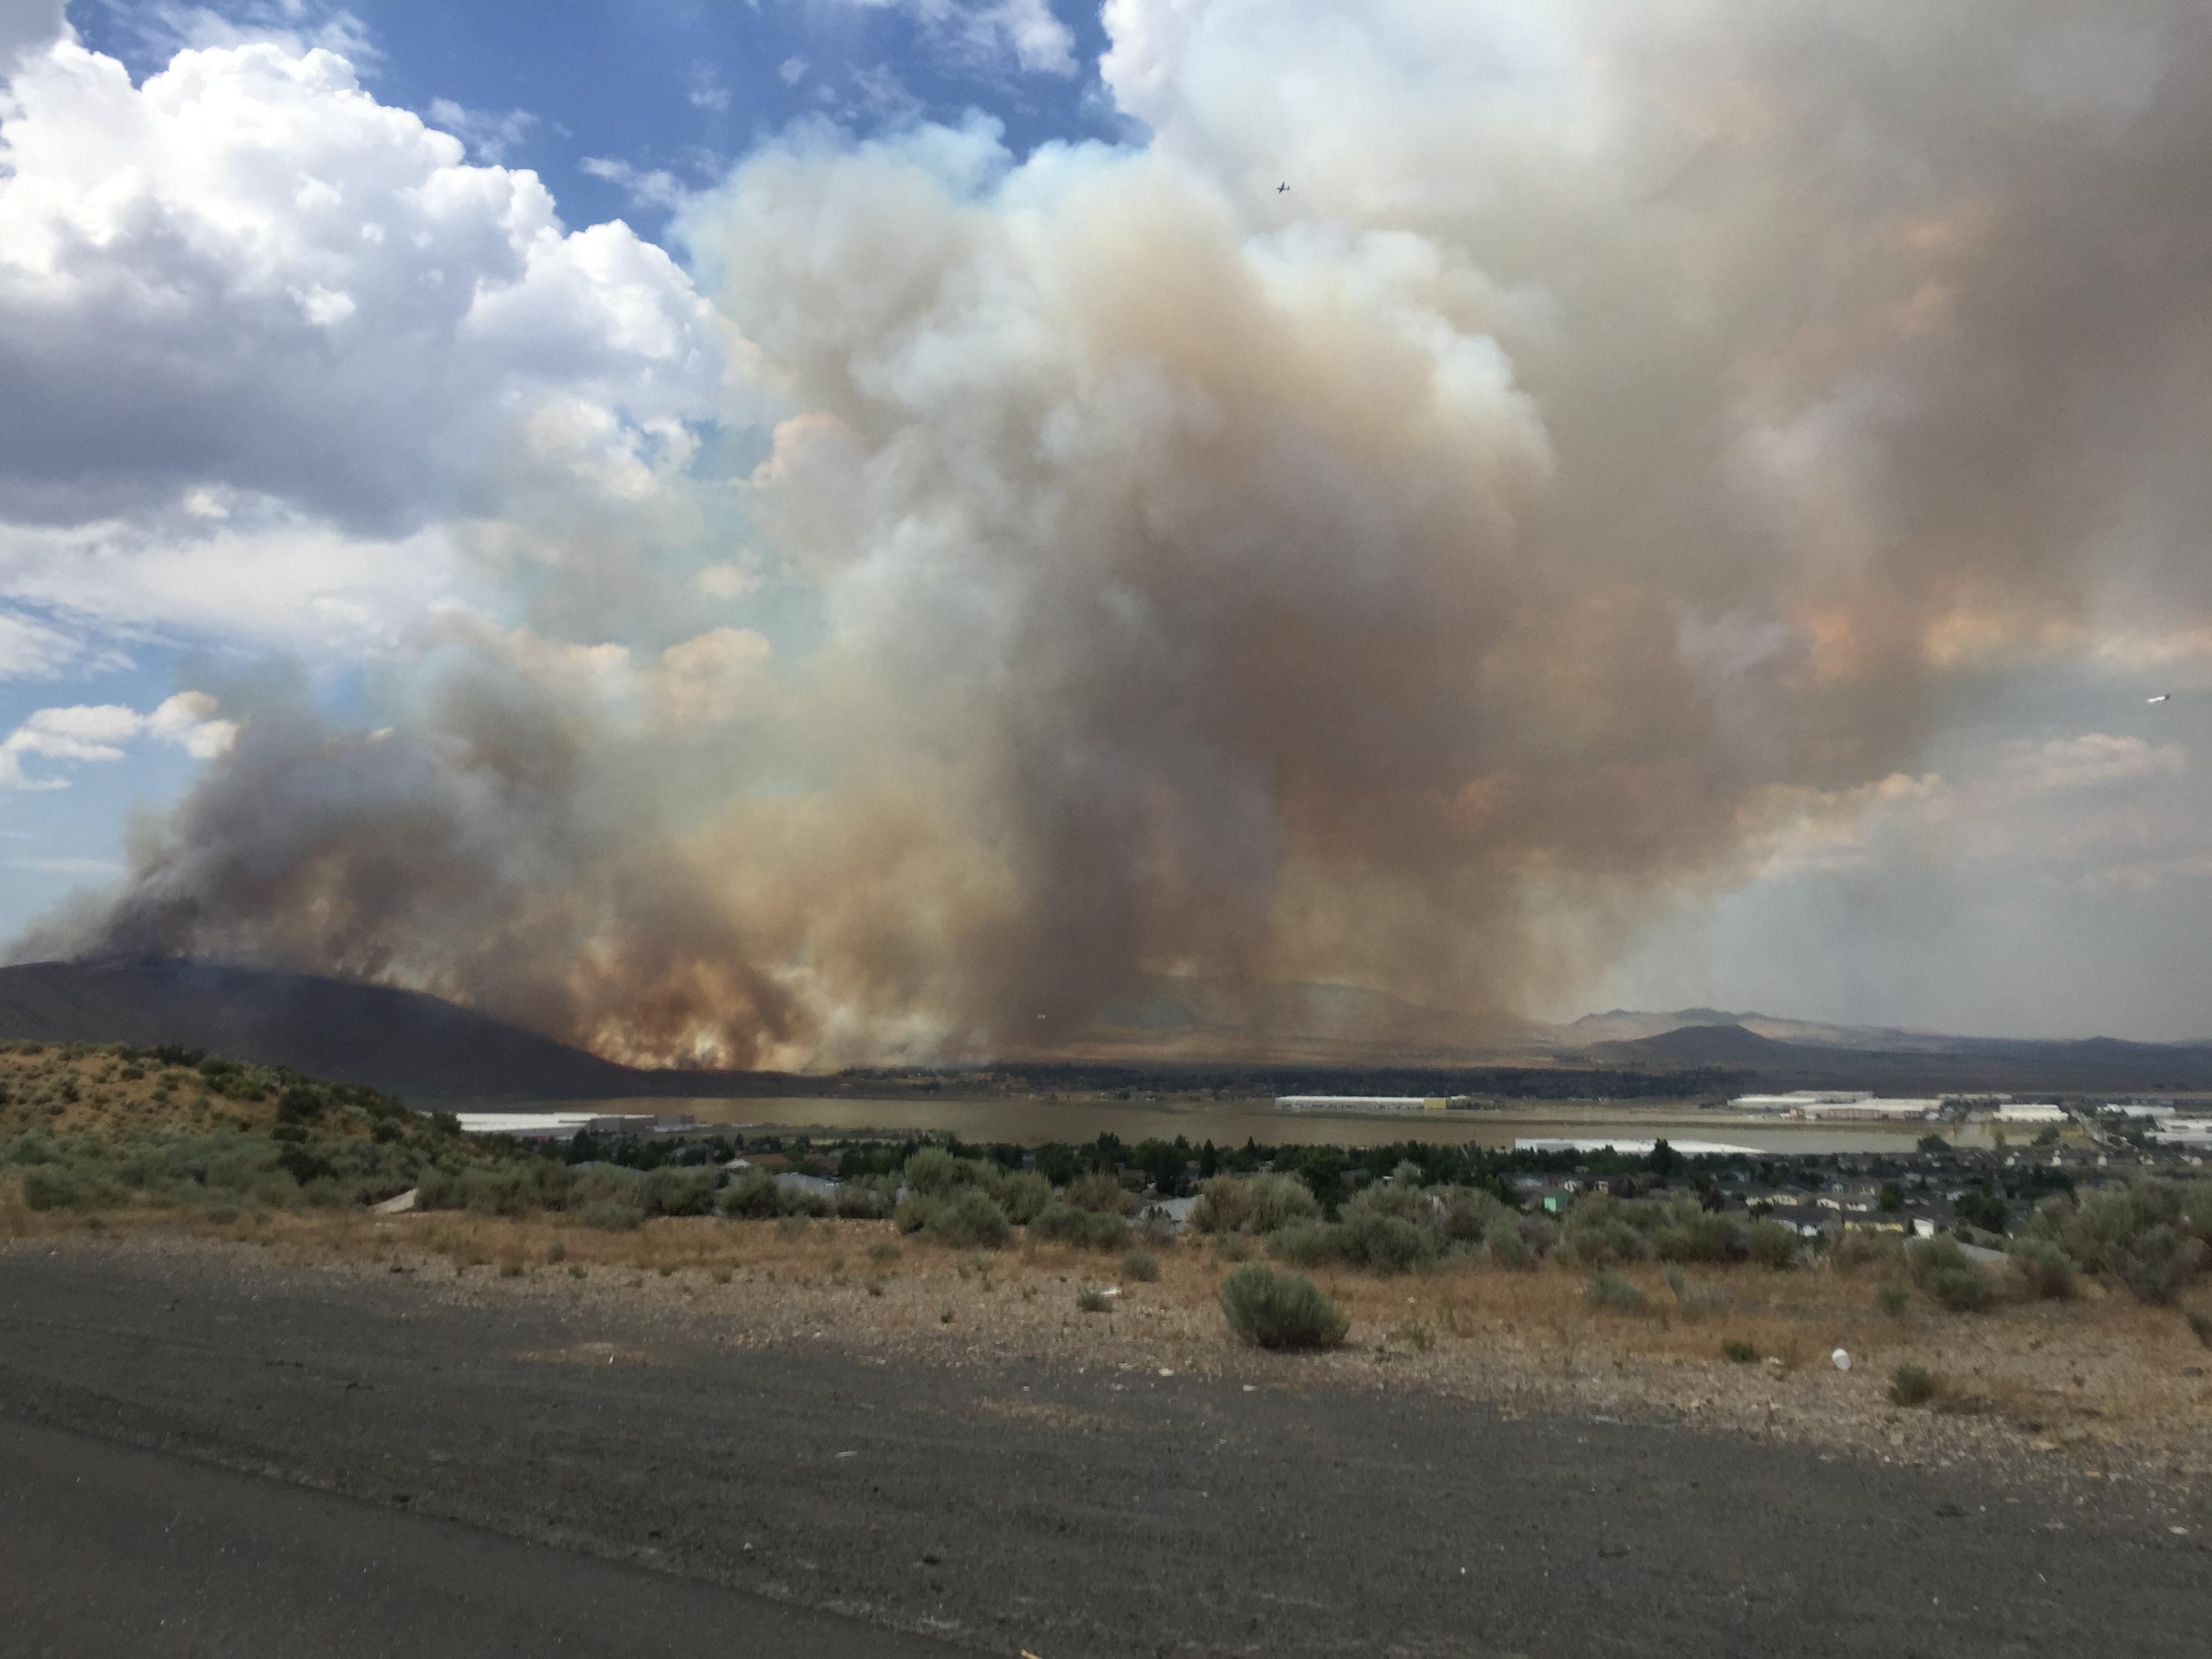 Brush fire along Hwy. 395 near Cold Springs prompts evacuations (KRNV)